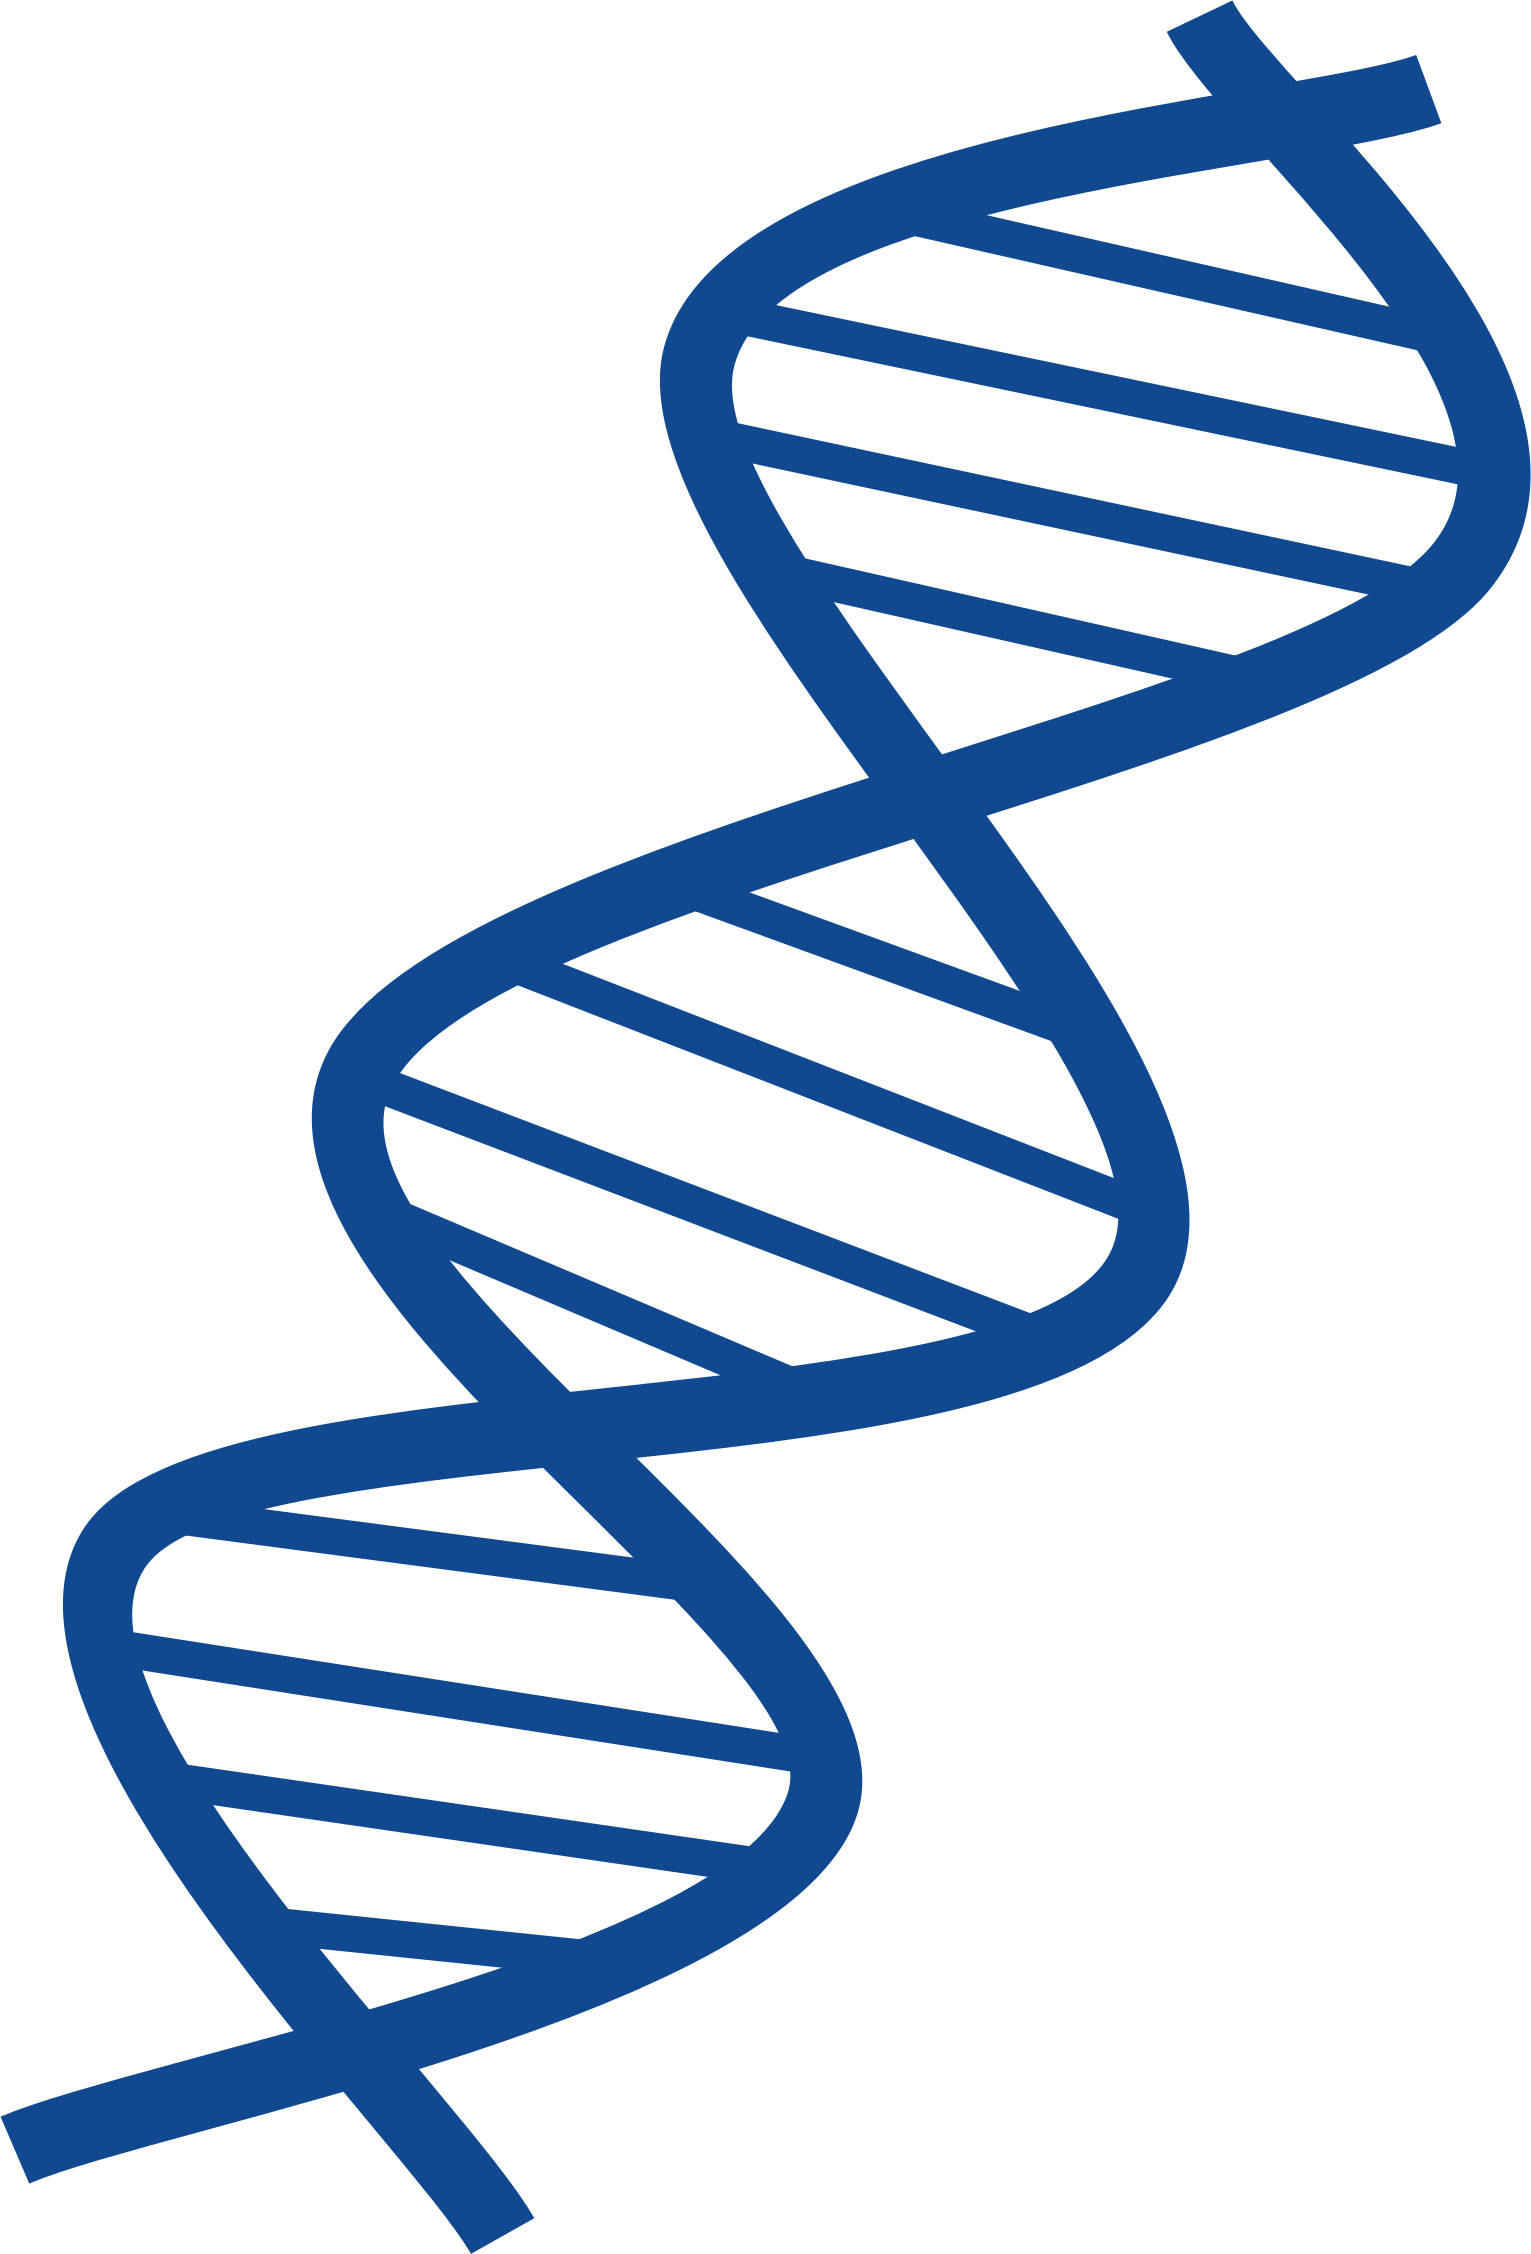 Dna tree clipart image free Image result for DNA art blue | Chemistry Graphics | Pinterest ... image free